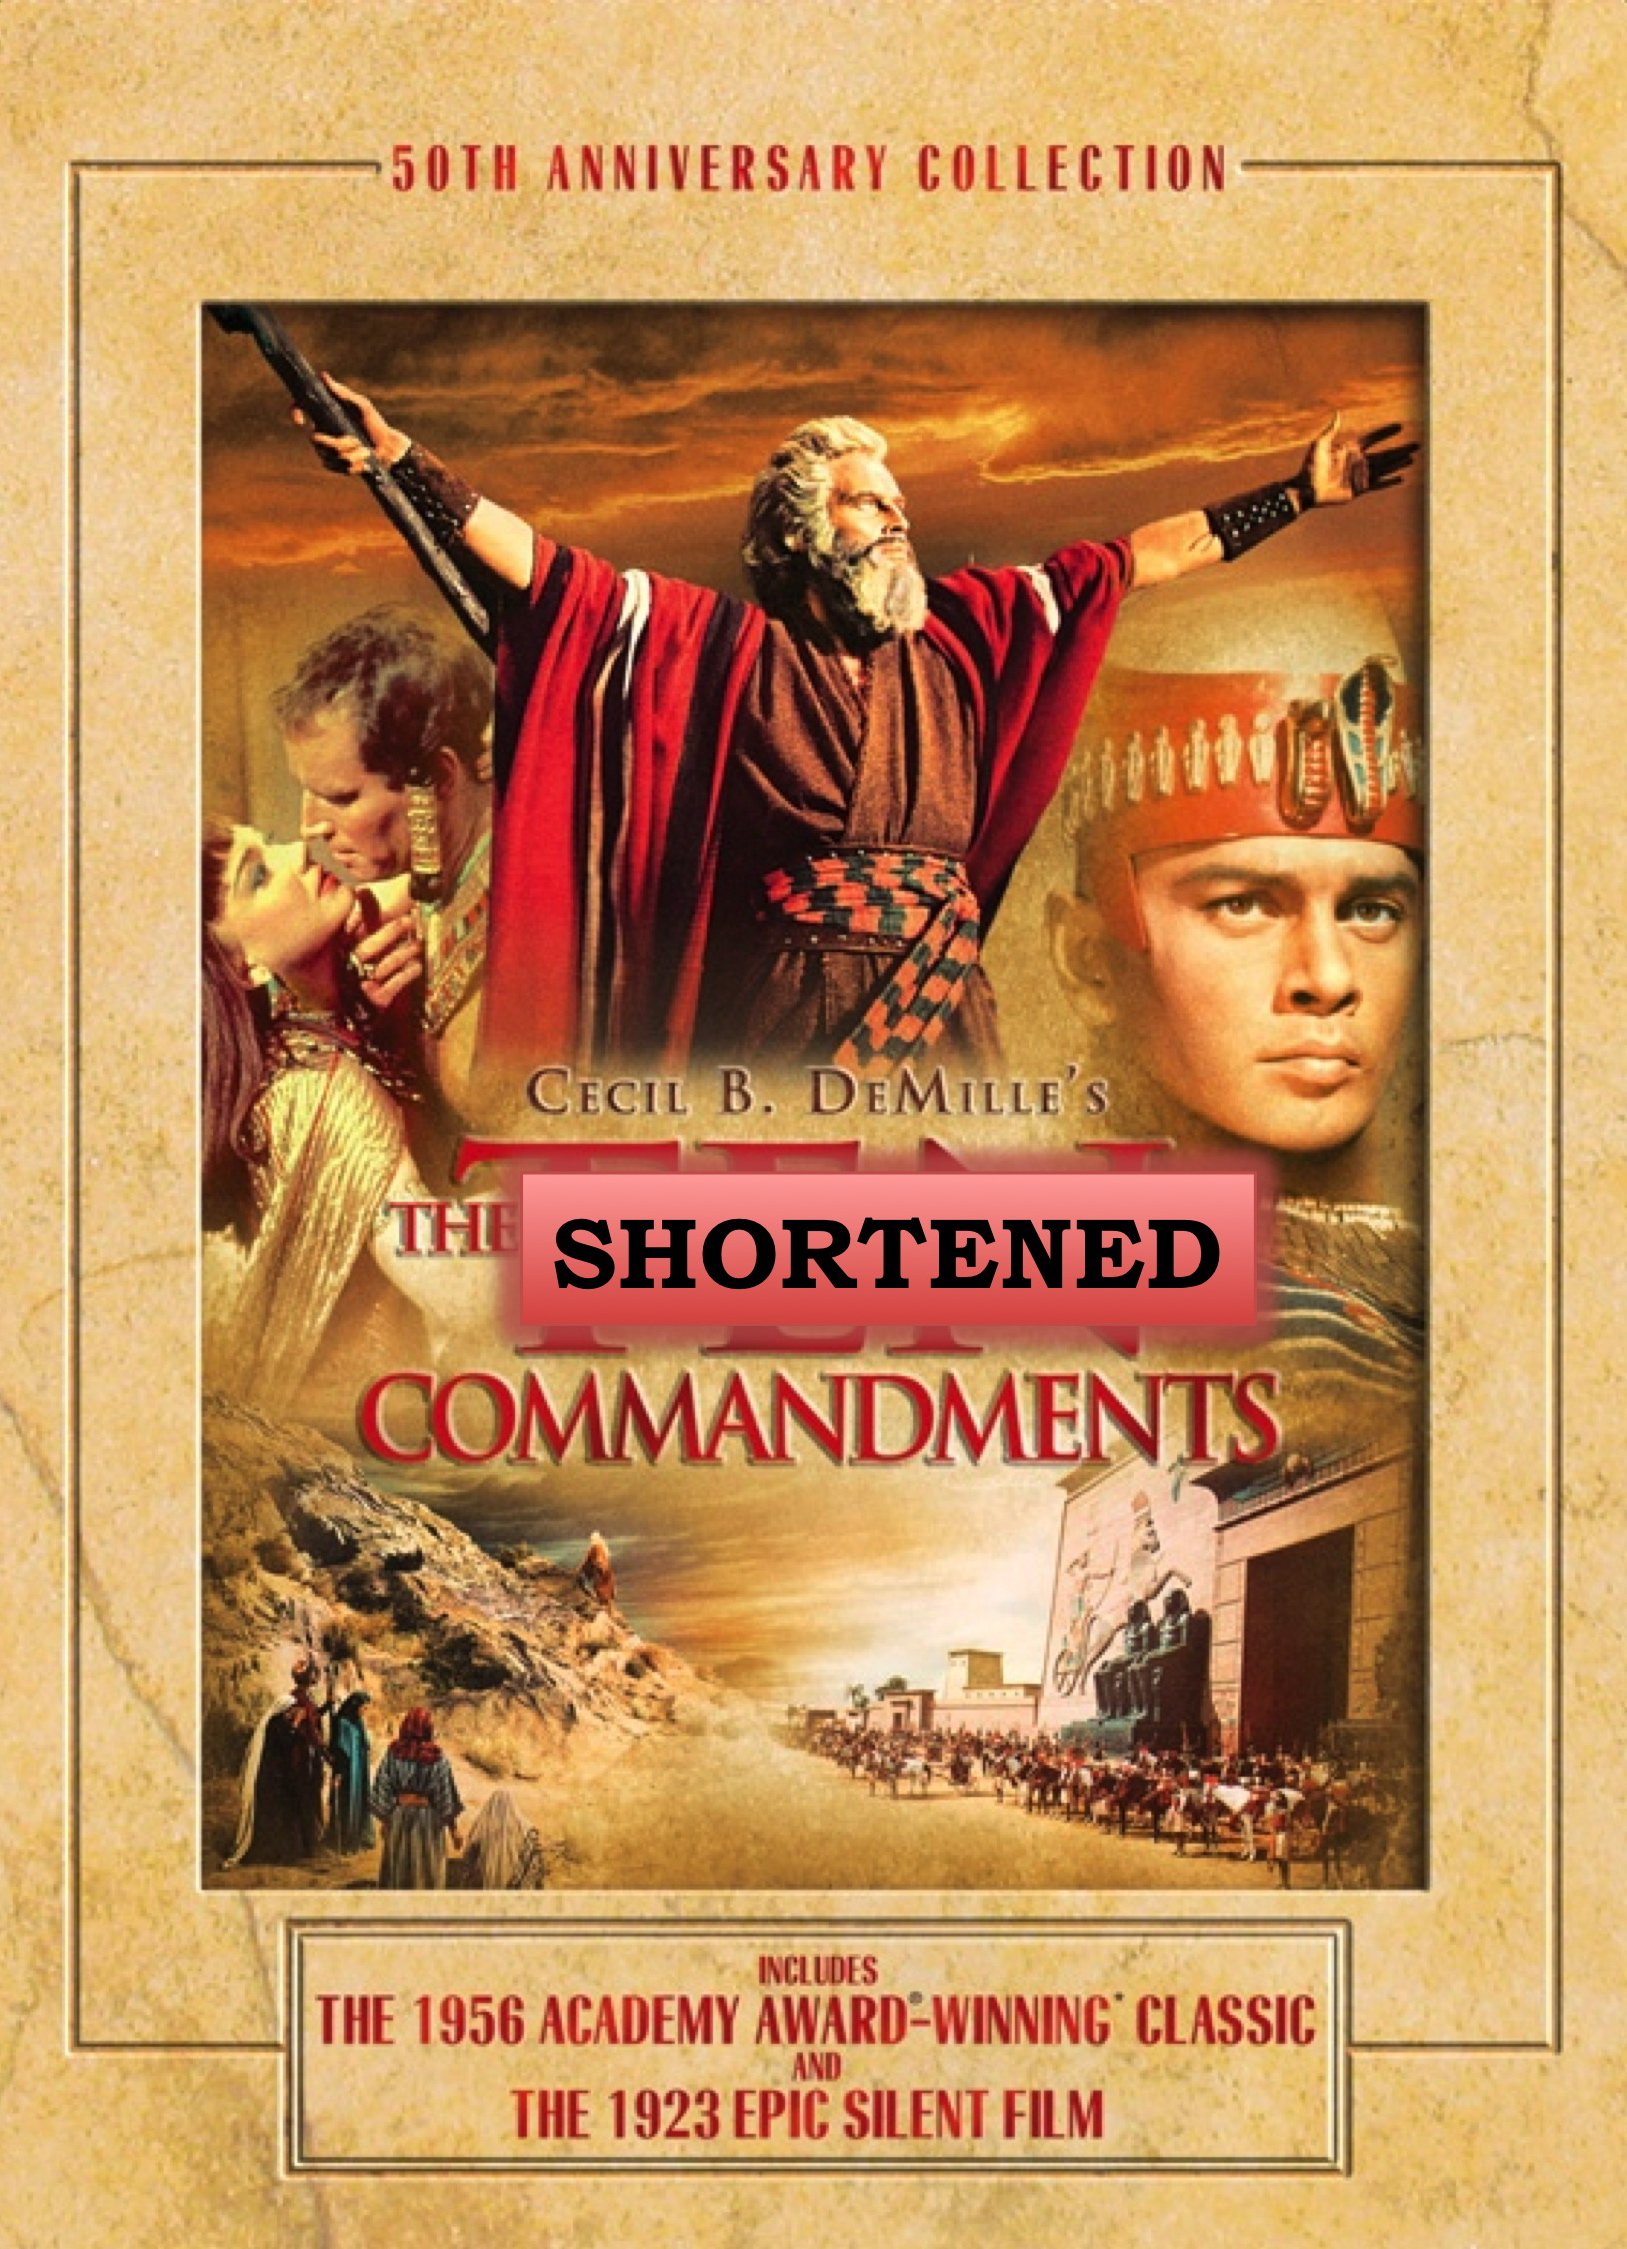 TheShortenedCommandments.jpg